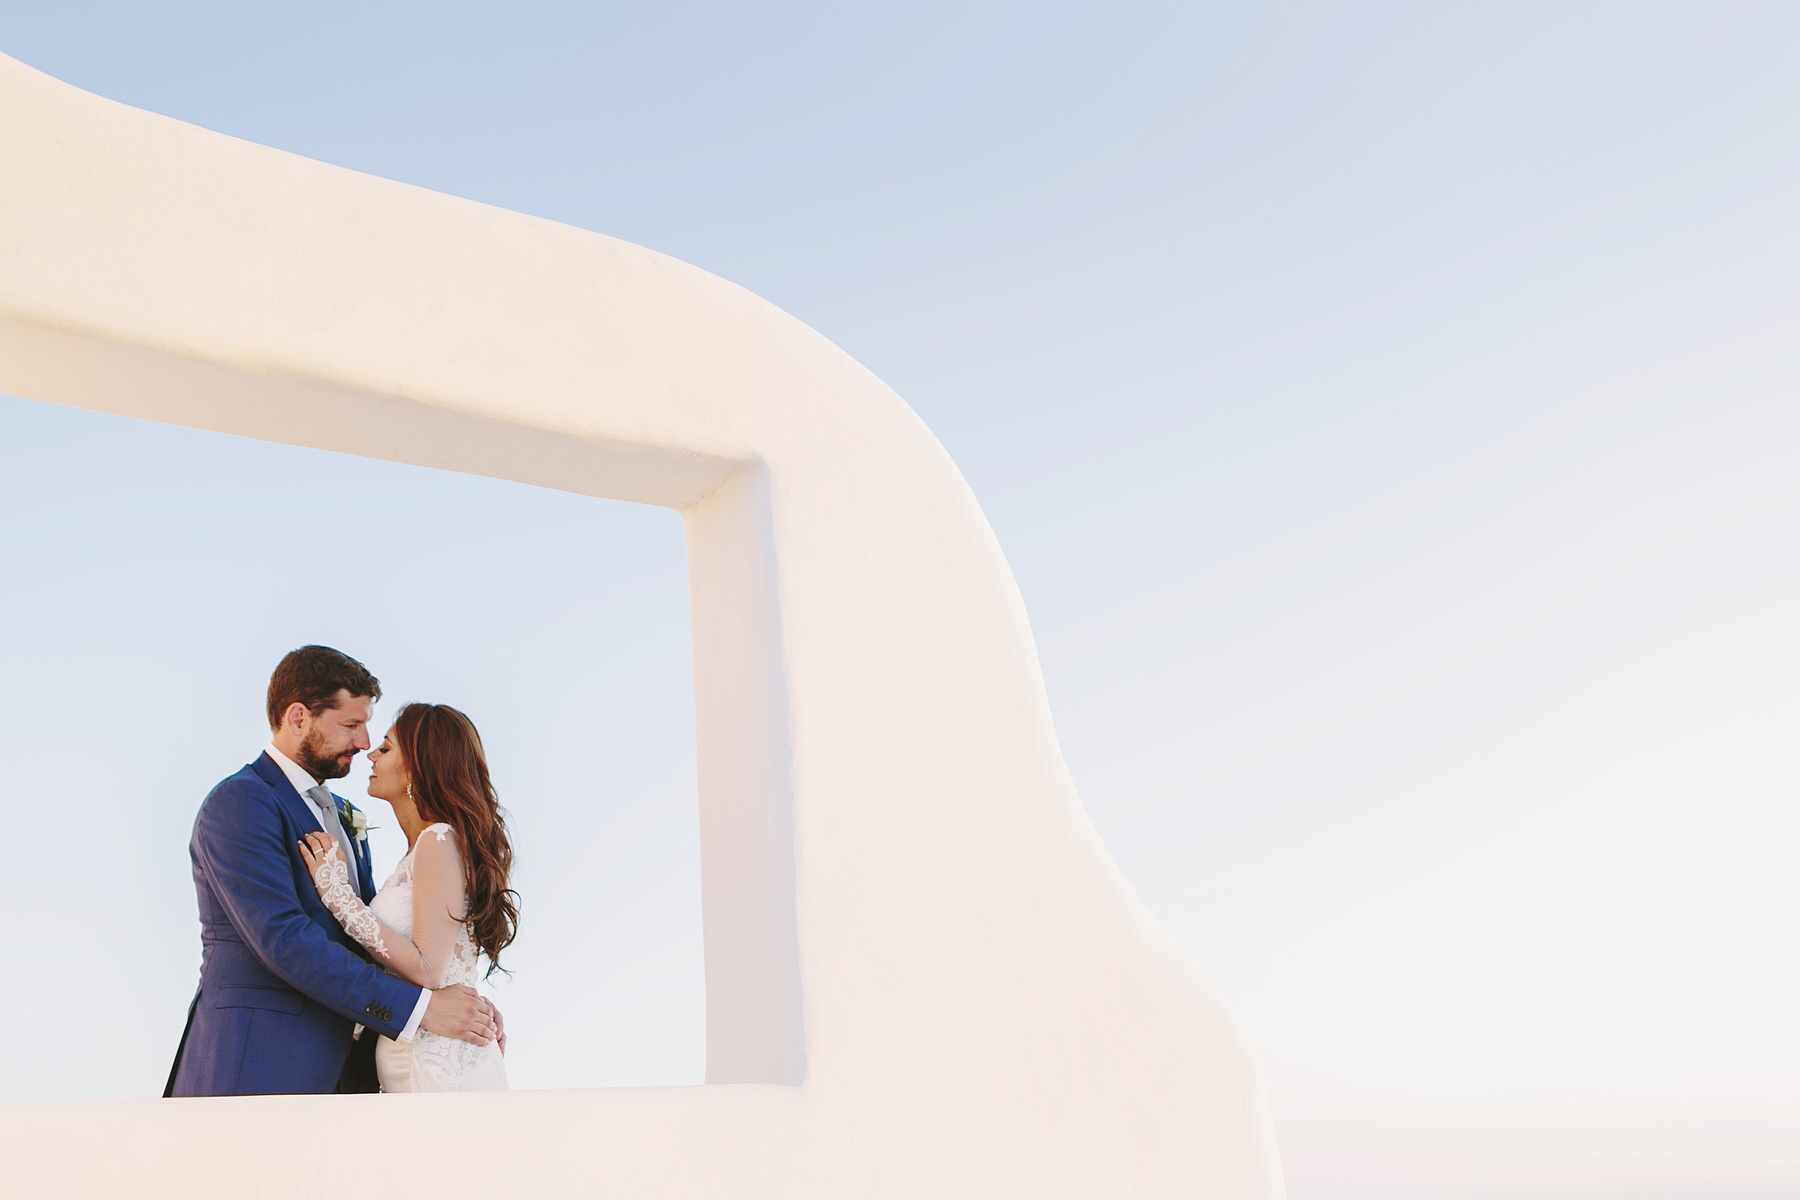 061 wedding in mykonos wedding photographer mykonos 2